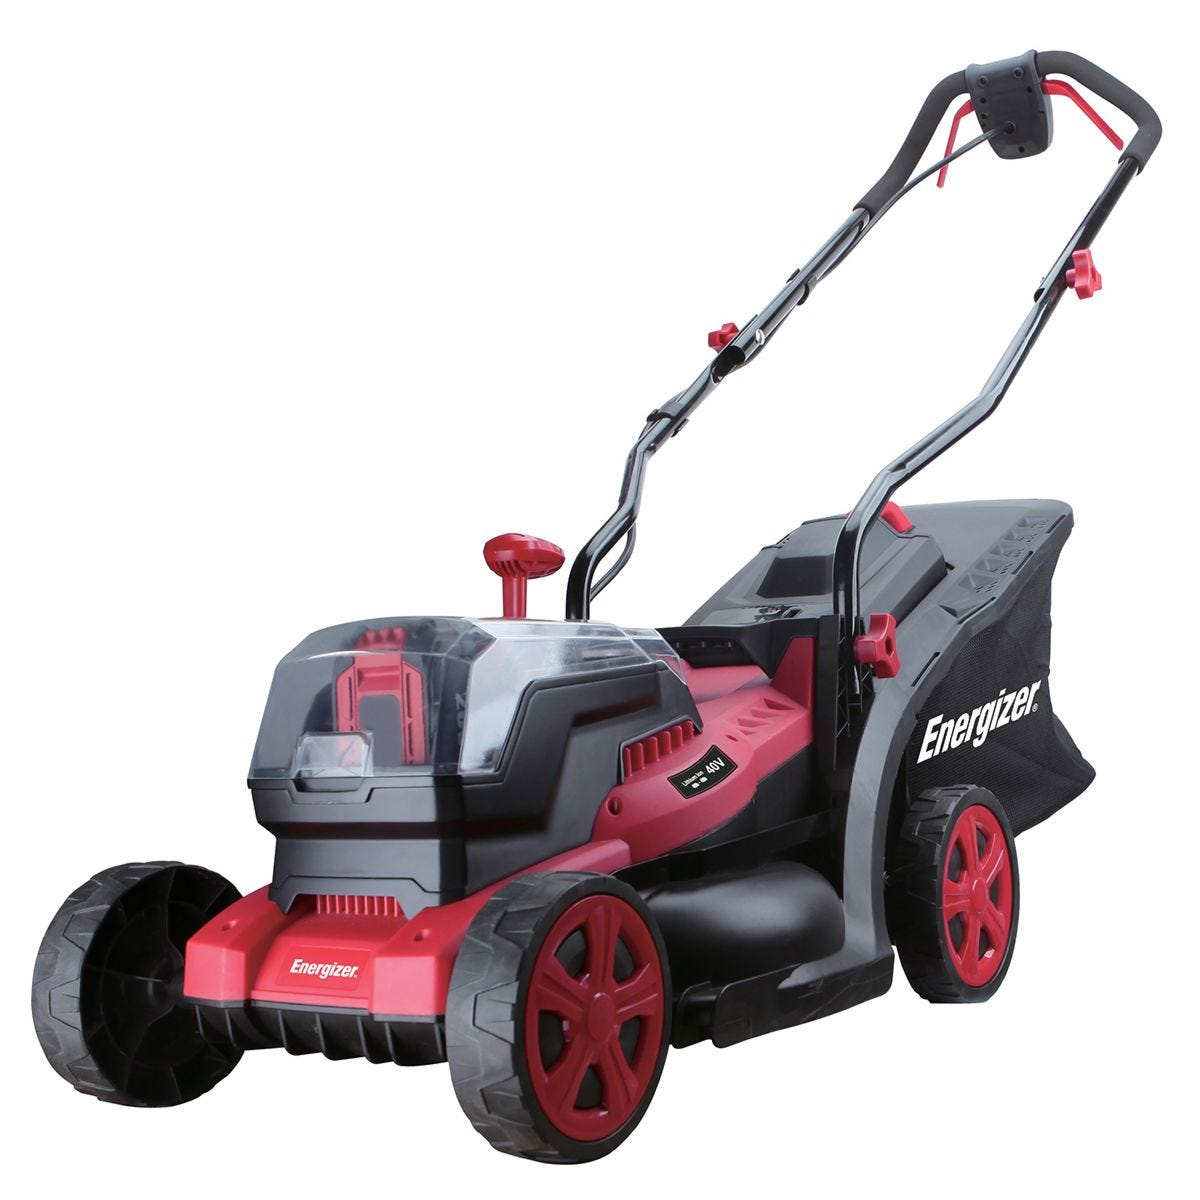 Energizer 20V Cordless Mower Includes 2 x 4Ah Batteries and Charger